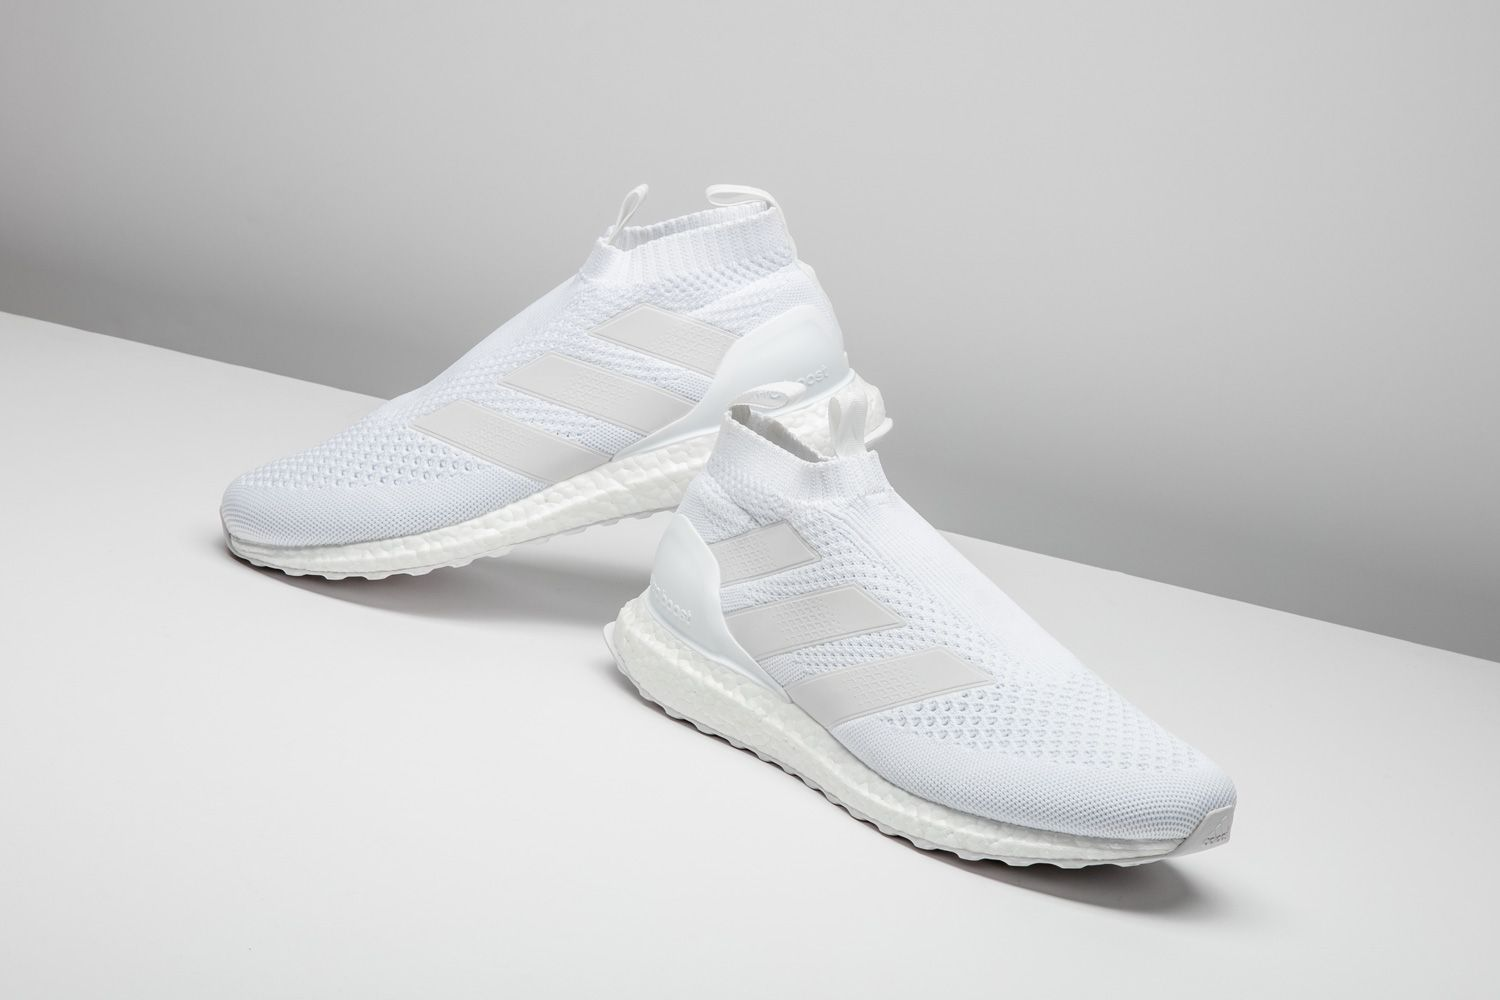 size 40 10c9b 60f80 The adidas ACE 16+ Purecontrol Ultra Boost in the icy white colorway is a  fall winter essential.  adidas